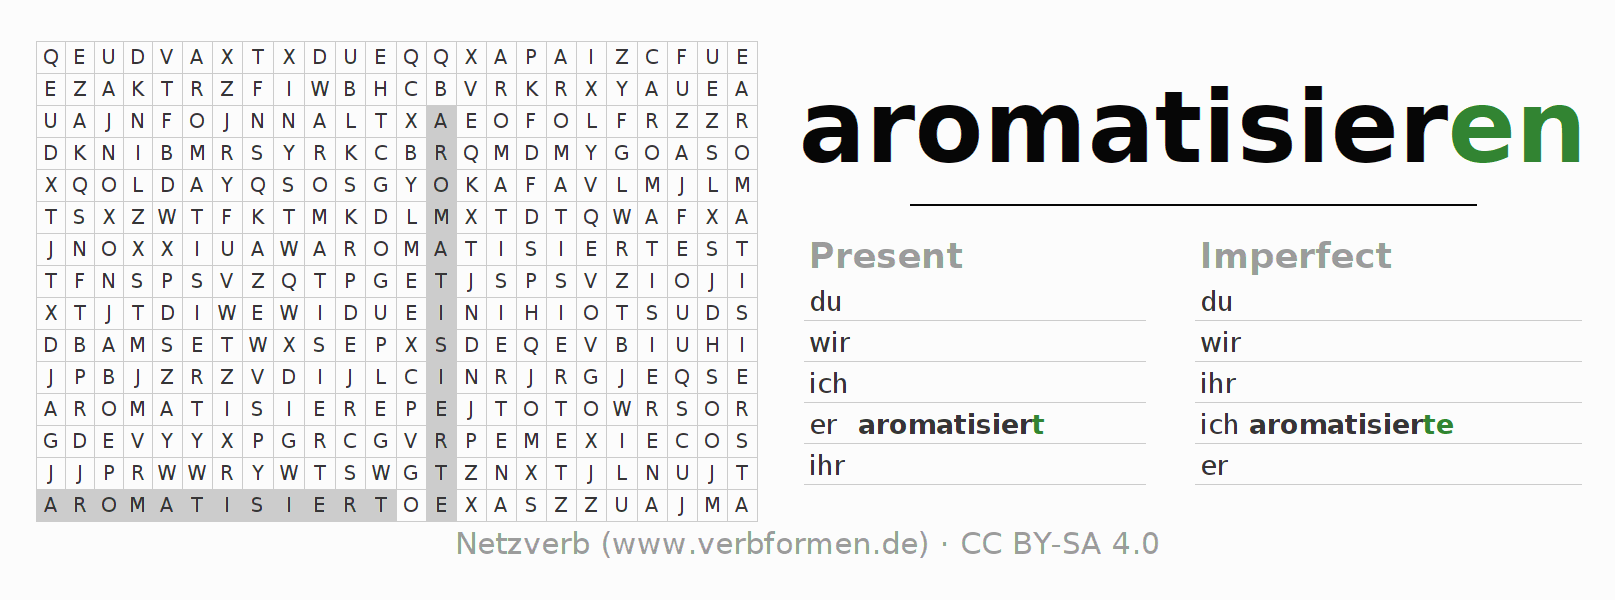 Word search puzzle for the conjugation of the verb aromatisieren